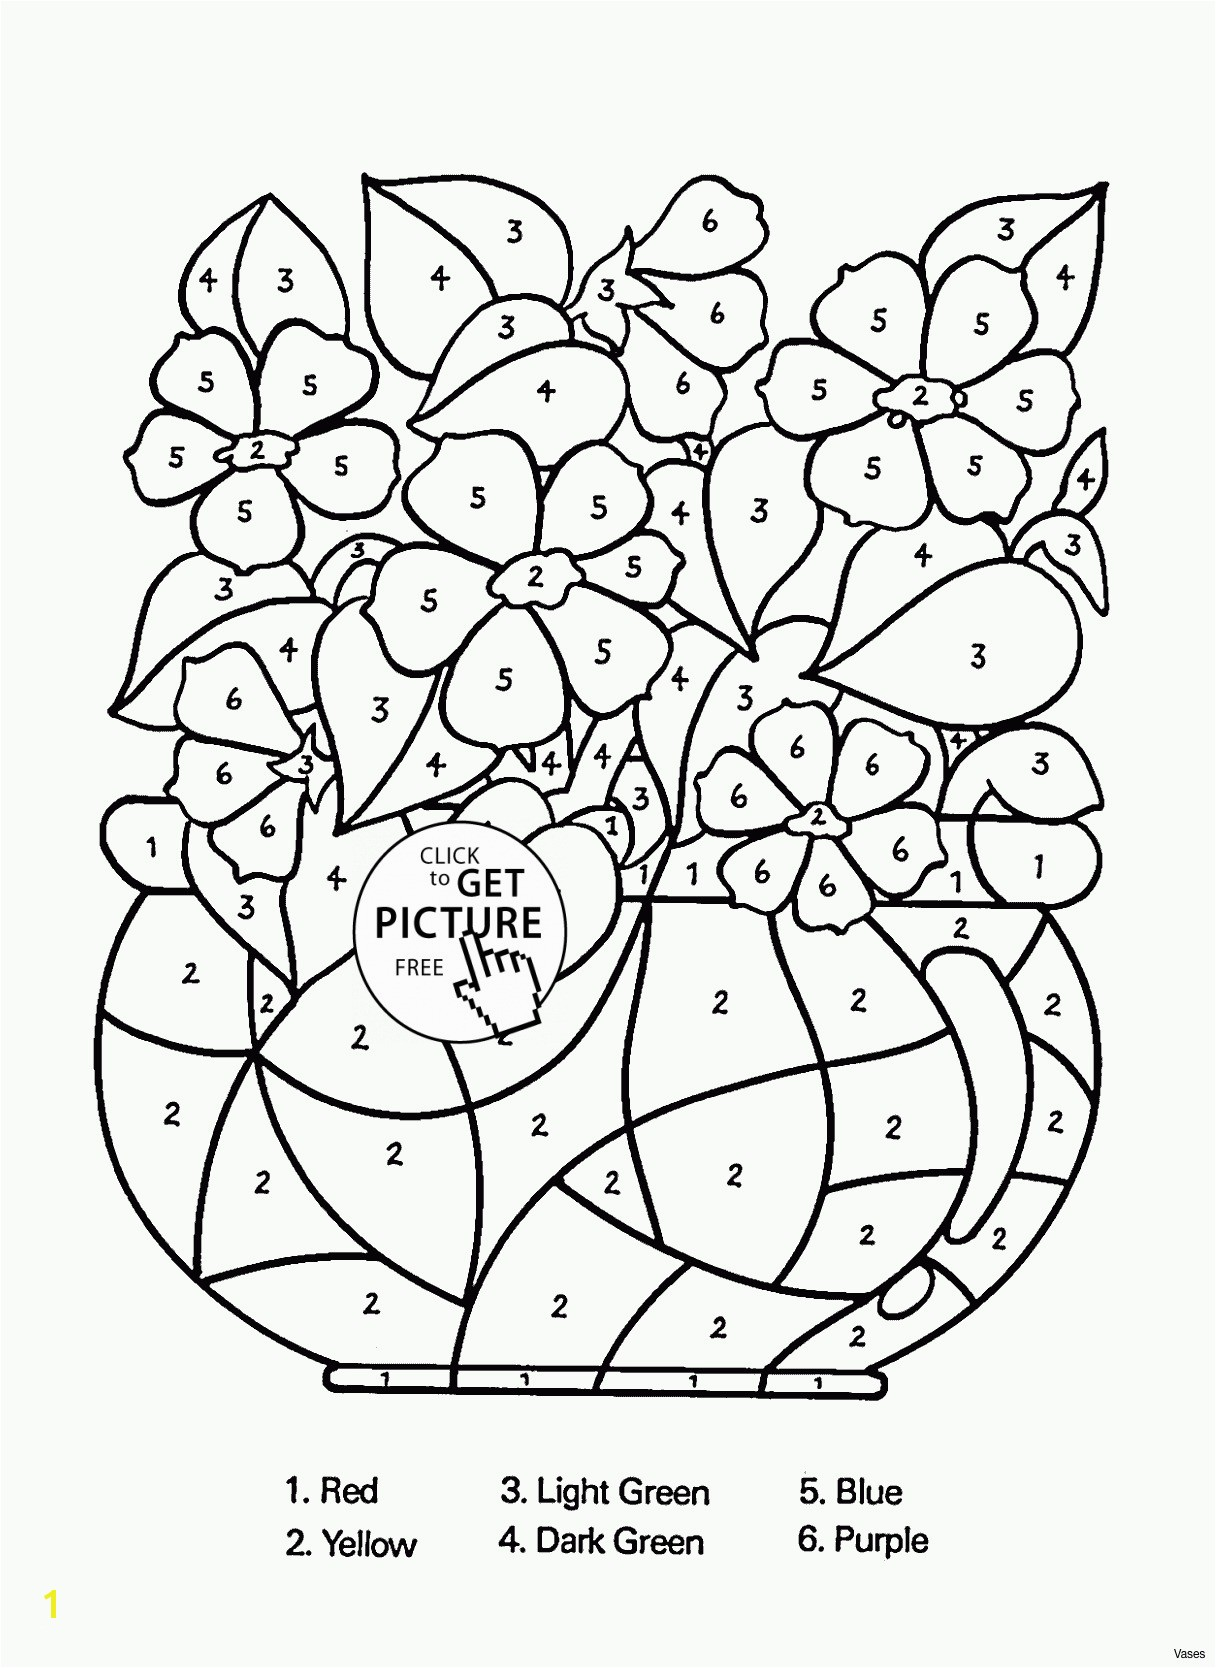 Free Printable Human Anatomy Coloring Pages Best Pokemon Coloring Pages Coloring Pages